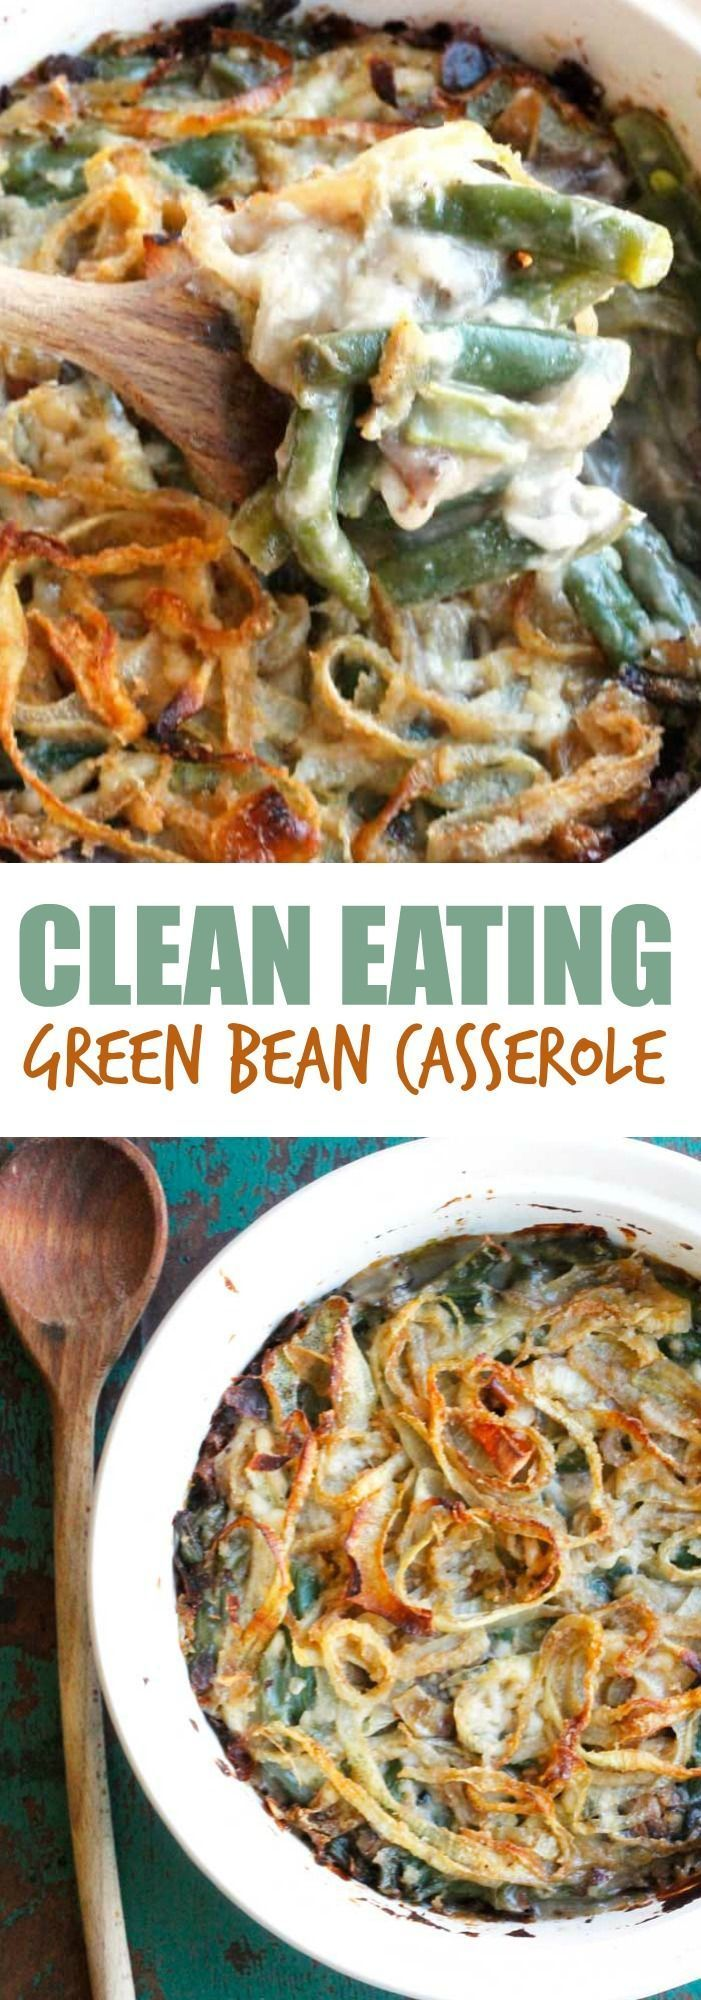 Clean Eating Green Bean Casserole images